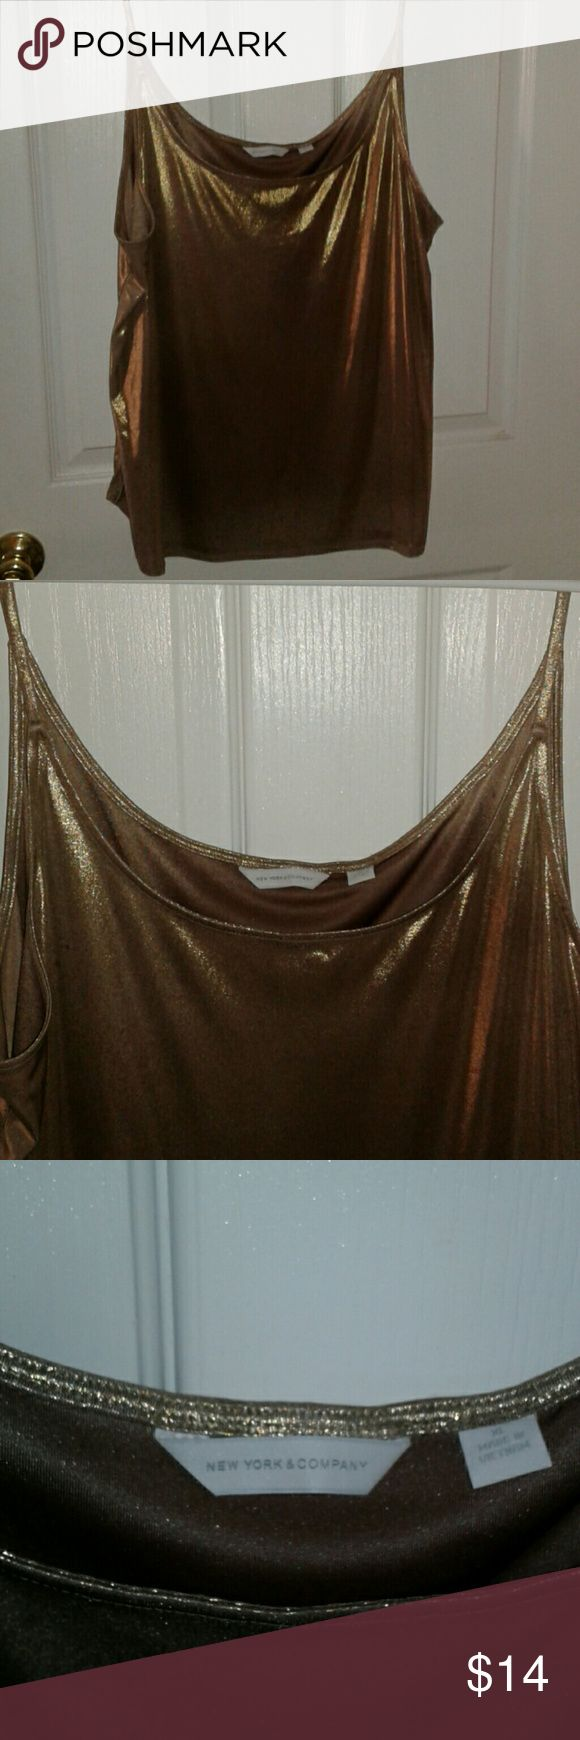 """Gold Lamar scoop neck holiday top-XL A really festive dress up gold metallic spaghetti strap top.Straight bottom hem. Semi fitted  Measurements approx: Strap to bottom-28"""" Arm pit to arm pit'- 21""""(I believe you double this) New York & Company Tops"""